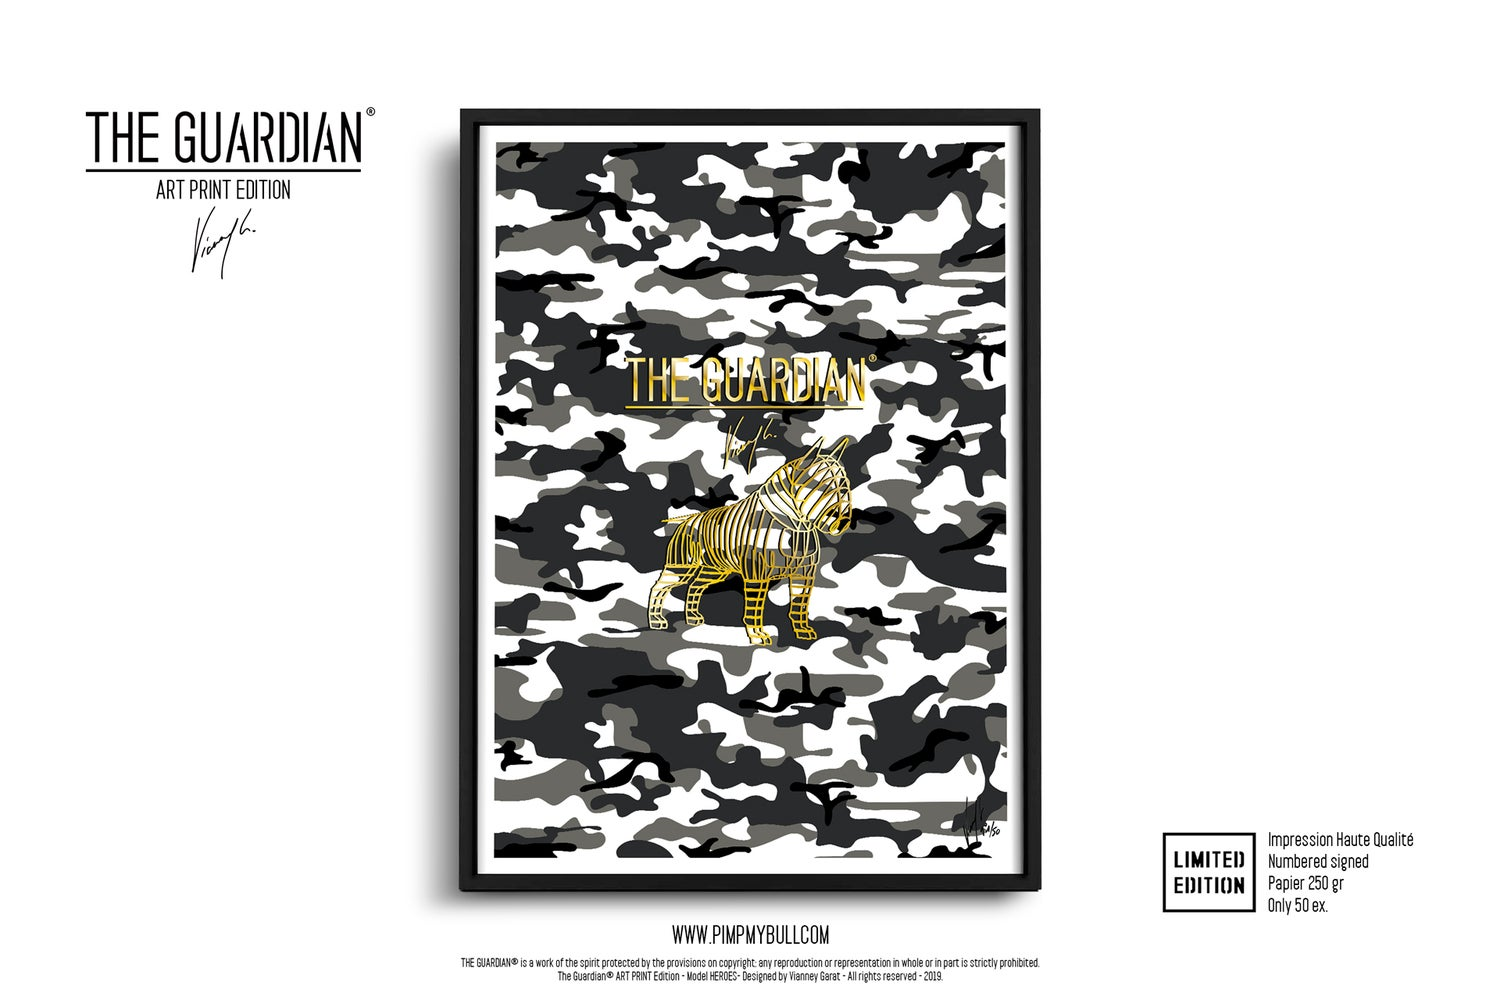 Image of ART PRINT - THE GUARDIAN CONTACT - Limited Edition 50 Units.